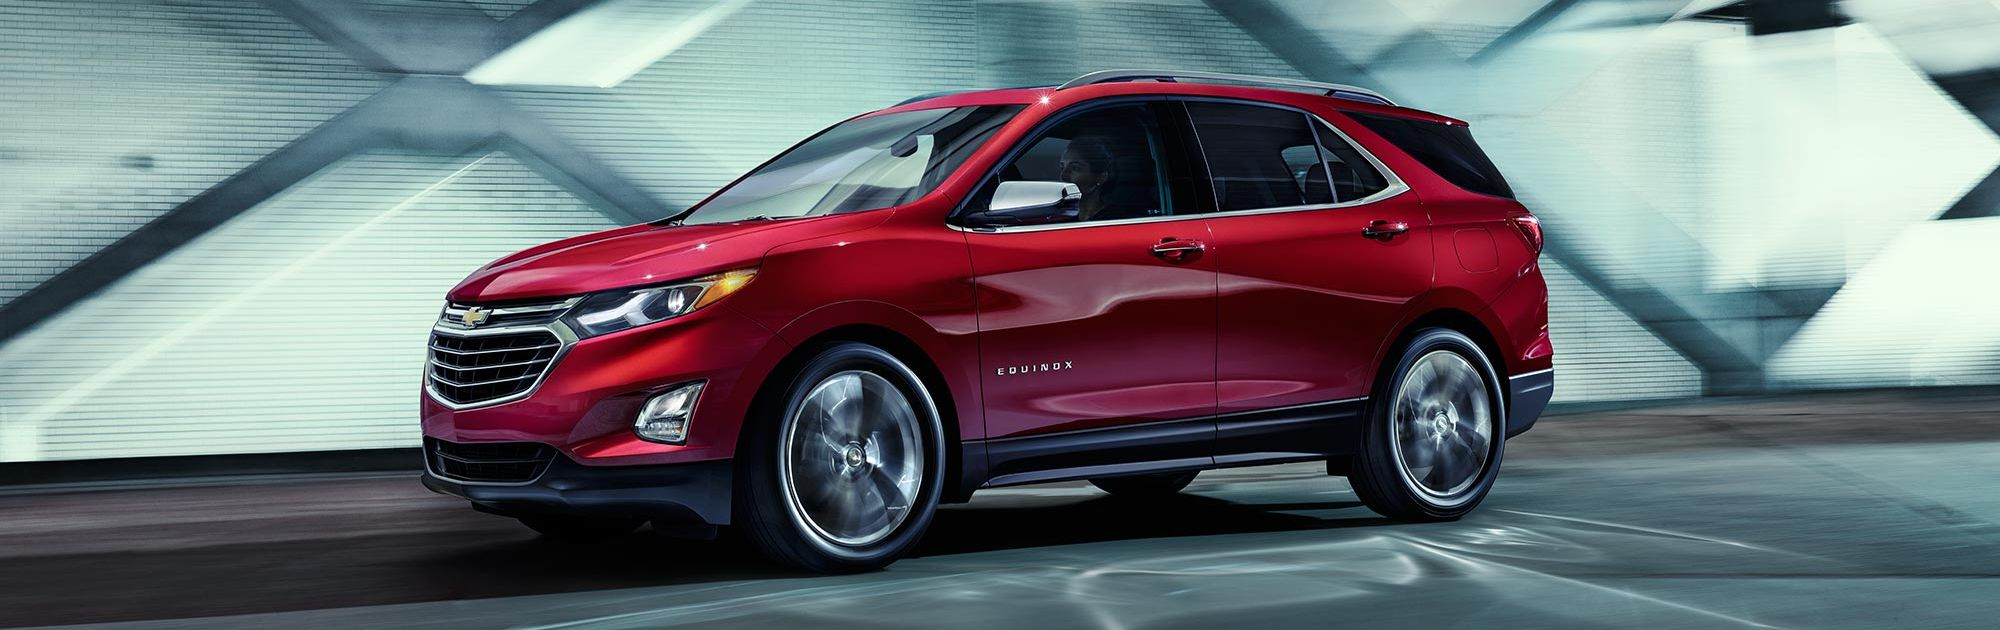 2018 Chevrolet Equinox for Sale near Schererville, IN